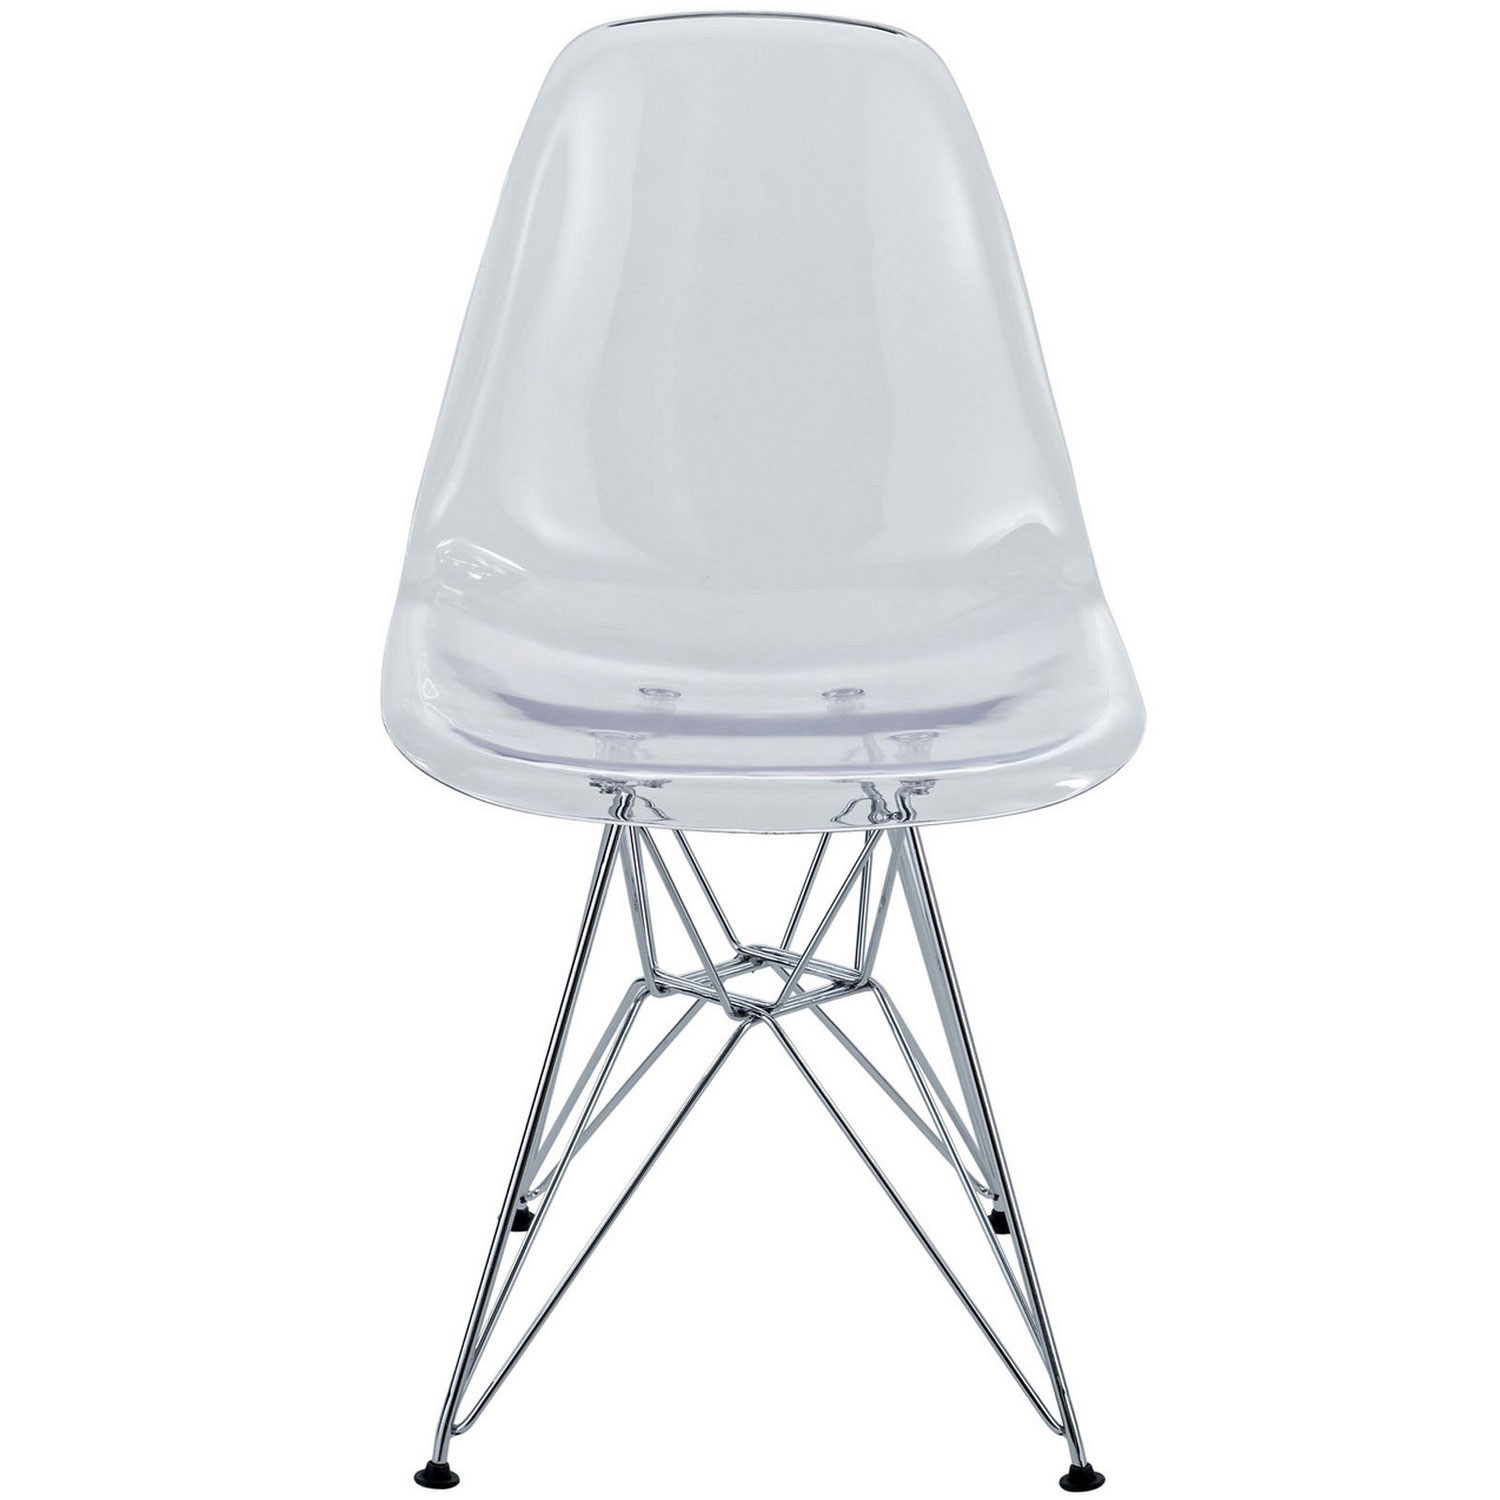 Modway Paris Dining Polycarbonate Side Chair - Clear